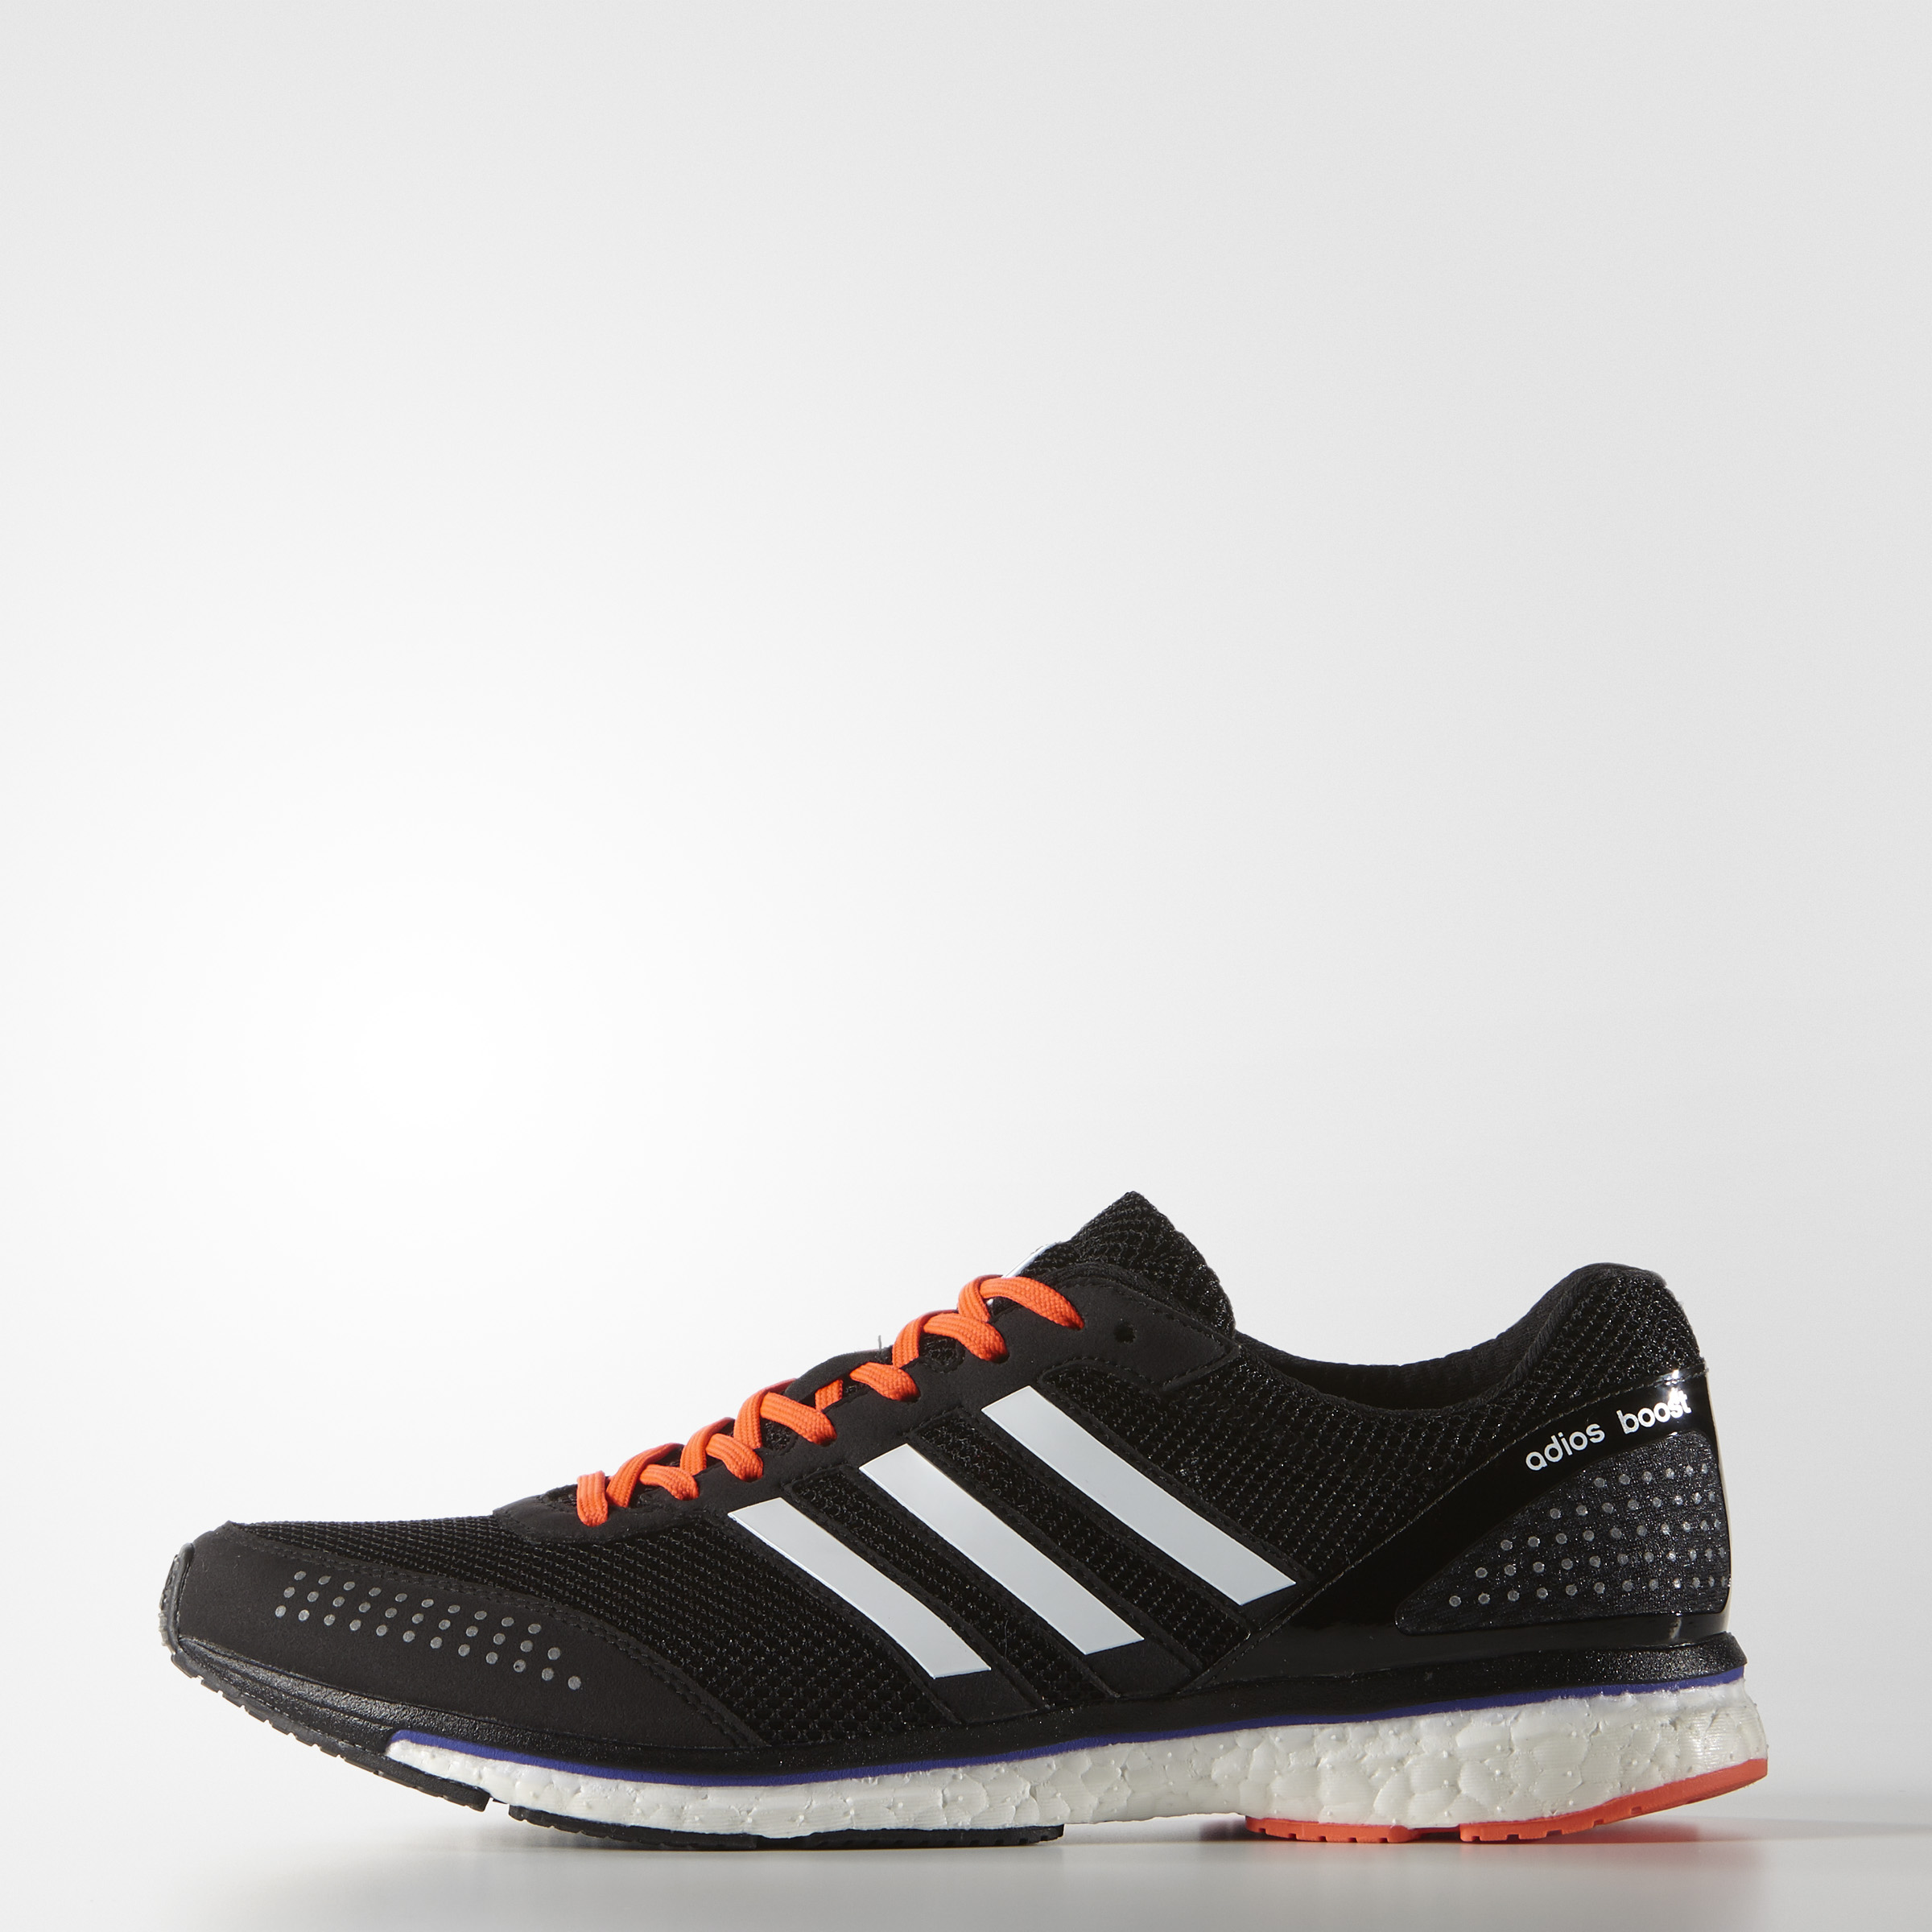 HOW TO FIND THE BEST COMPETITION SHOE